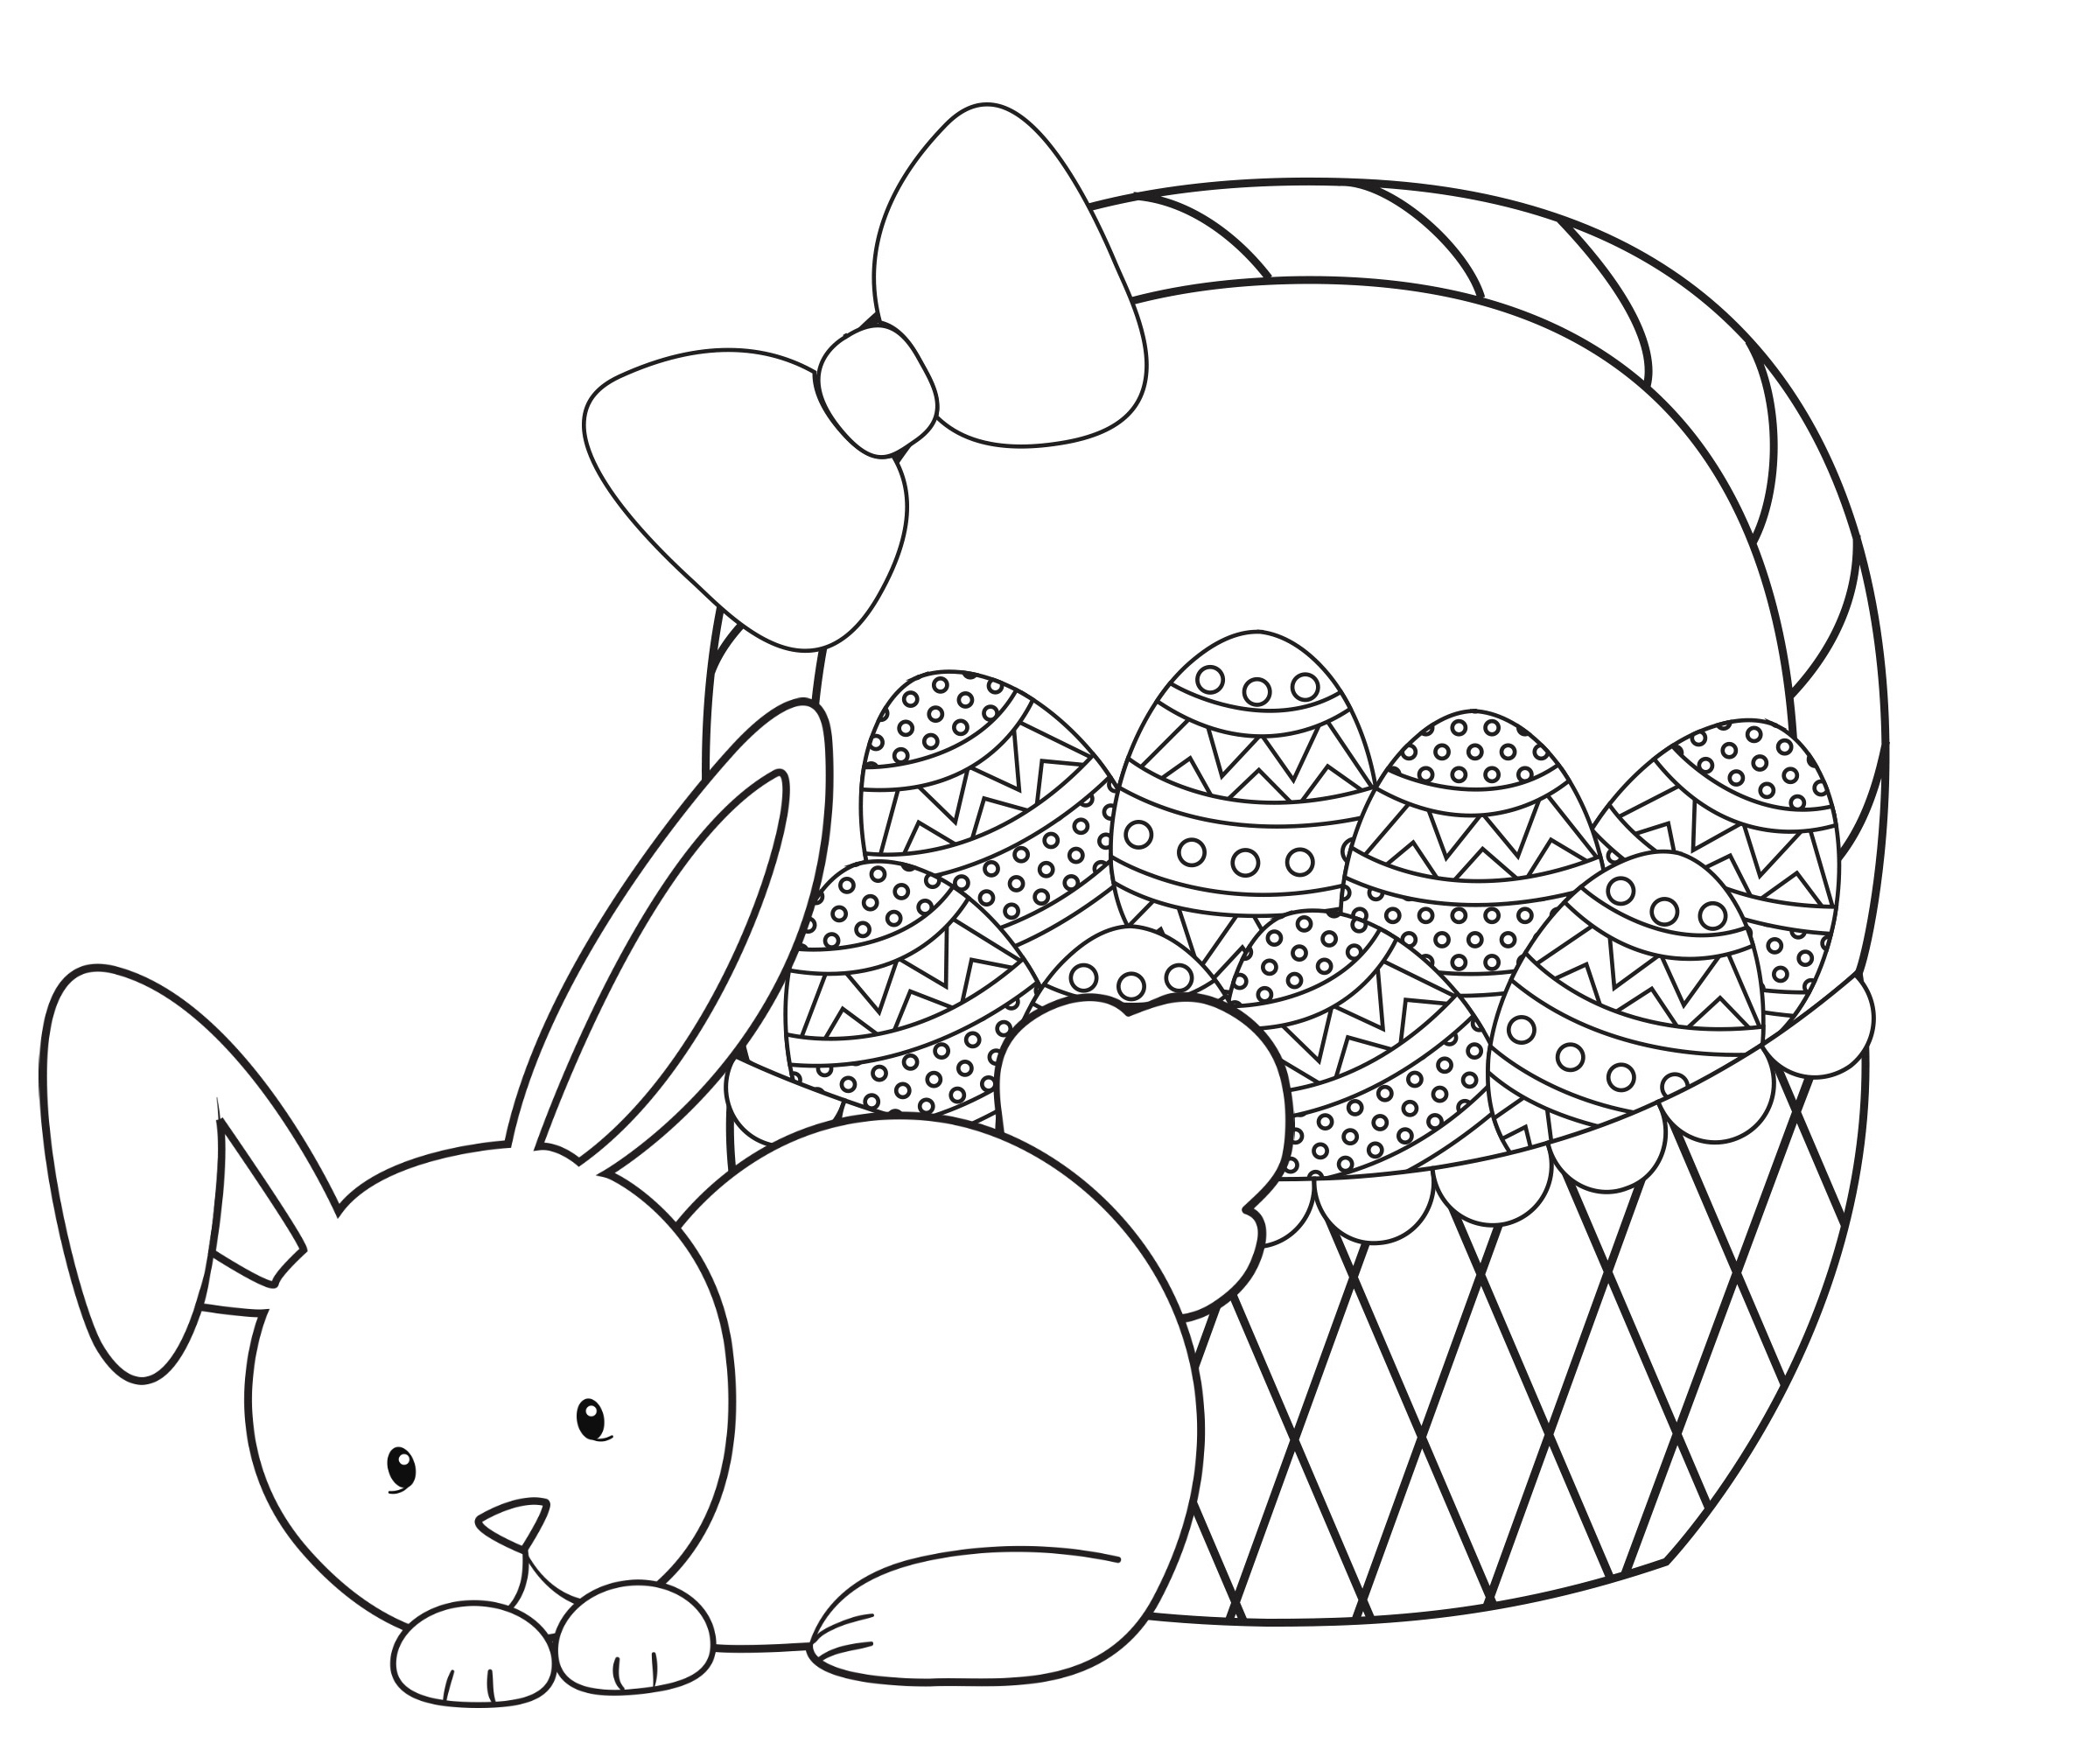 Easter Coloring Pages For Kids - Crazy Little Projects - Easter Coloring Pages Free Printable